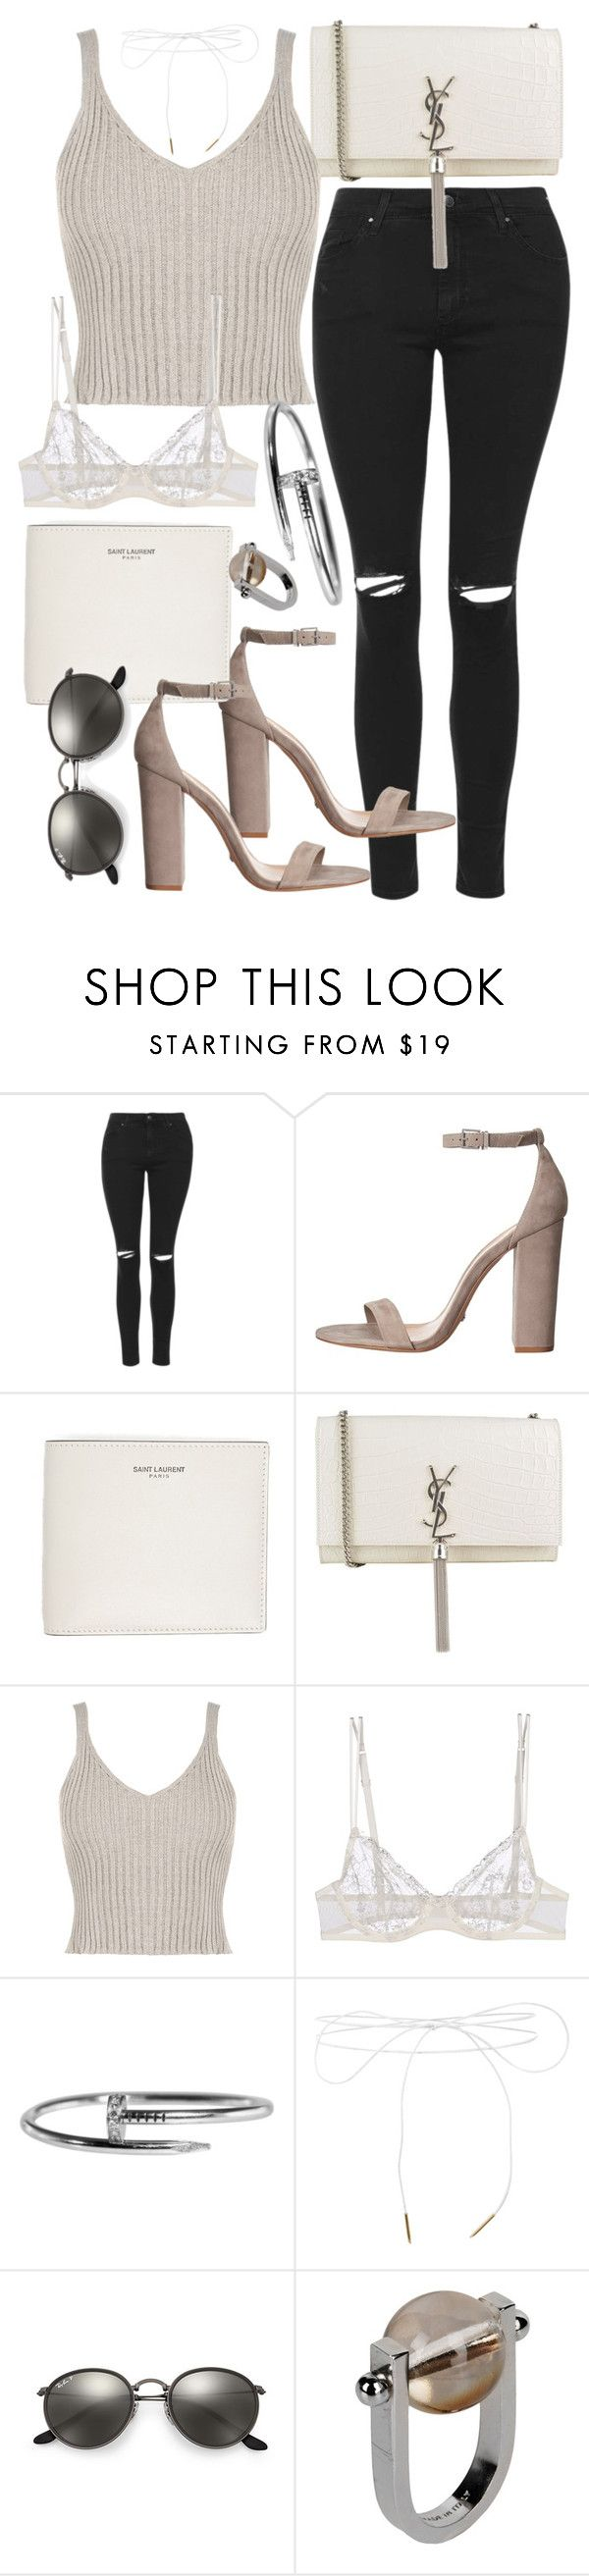 """""""Untitled #20217"""" by florencia95 ❤ liked on Polyvore featuring Topshop, Yves Saint Laurent, WearAll, La Perla, Lilou, Ray-Ban and Jil Sander"""